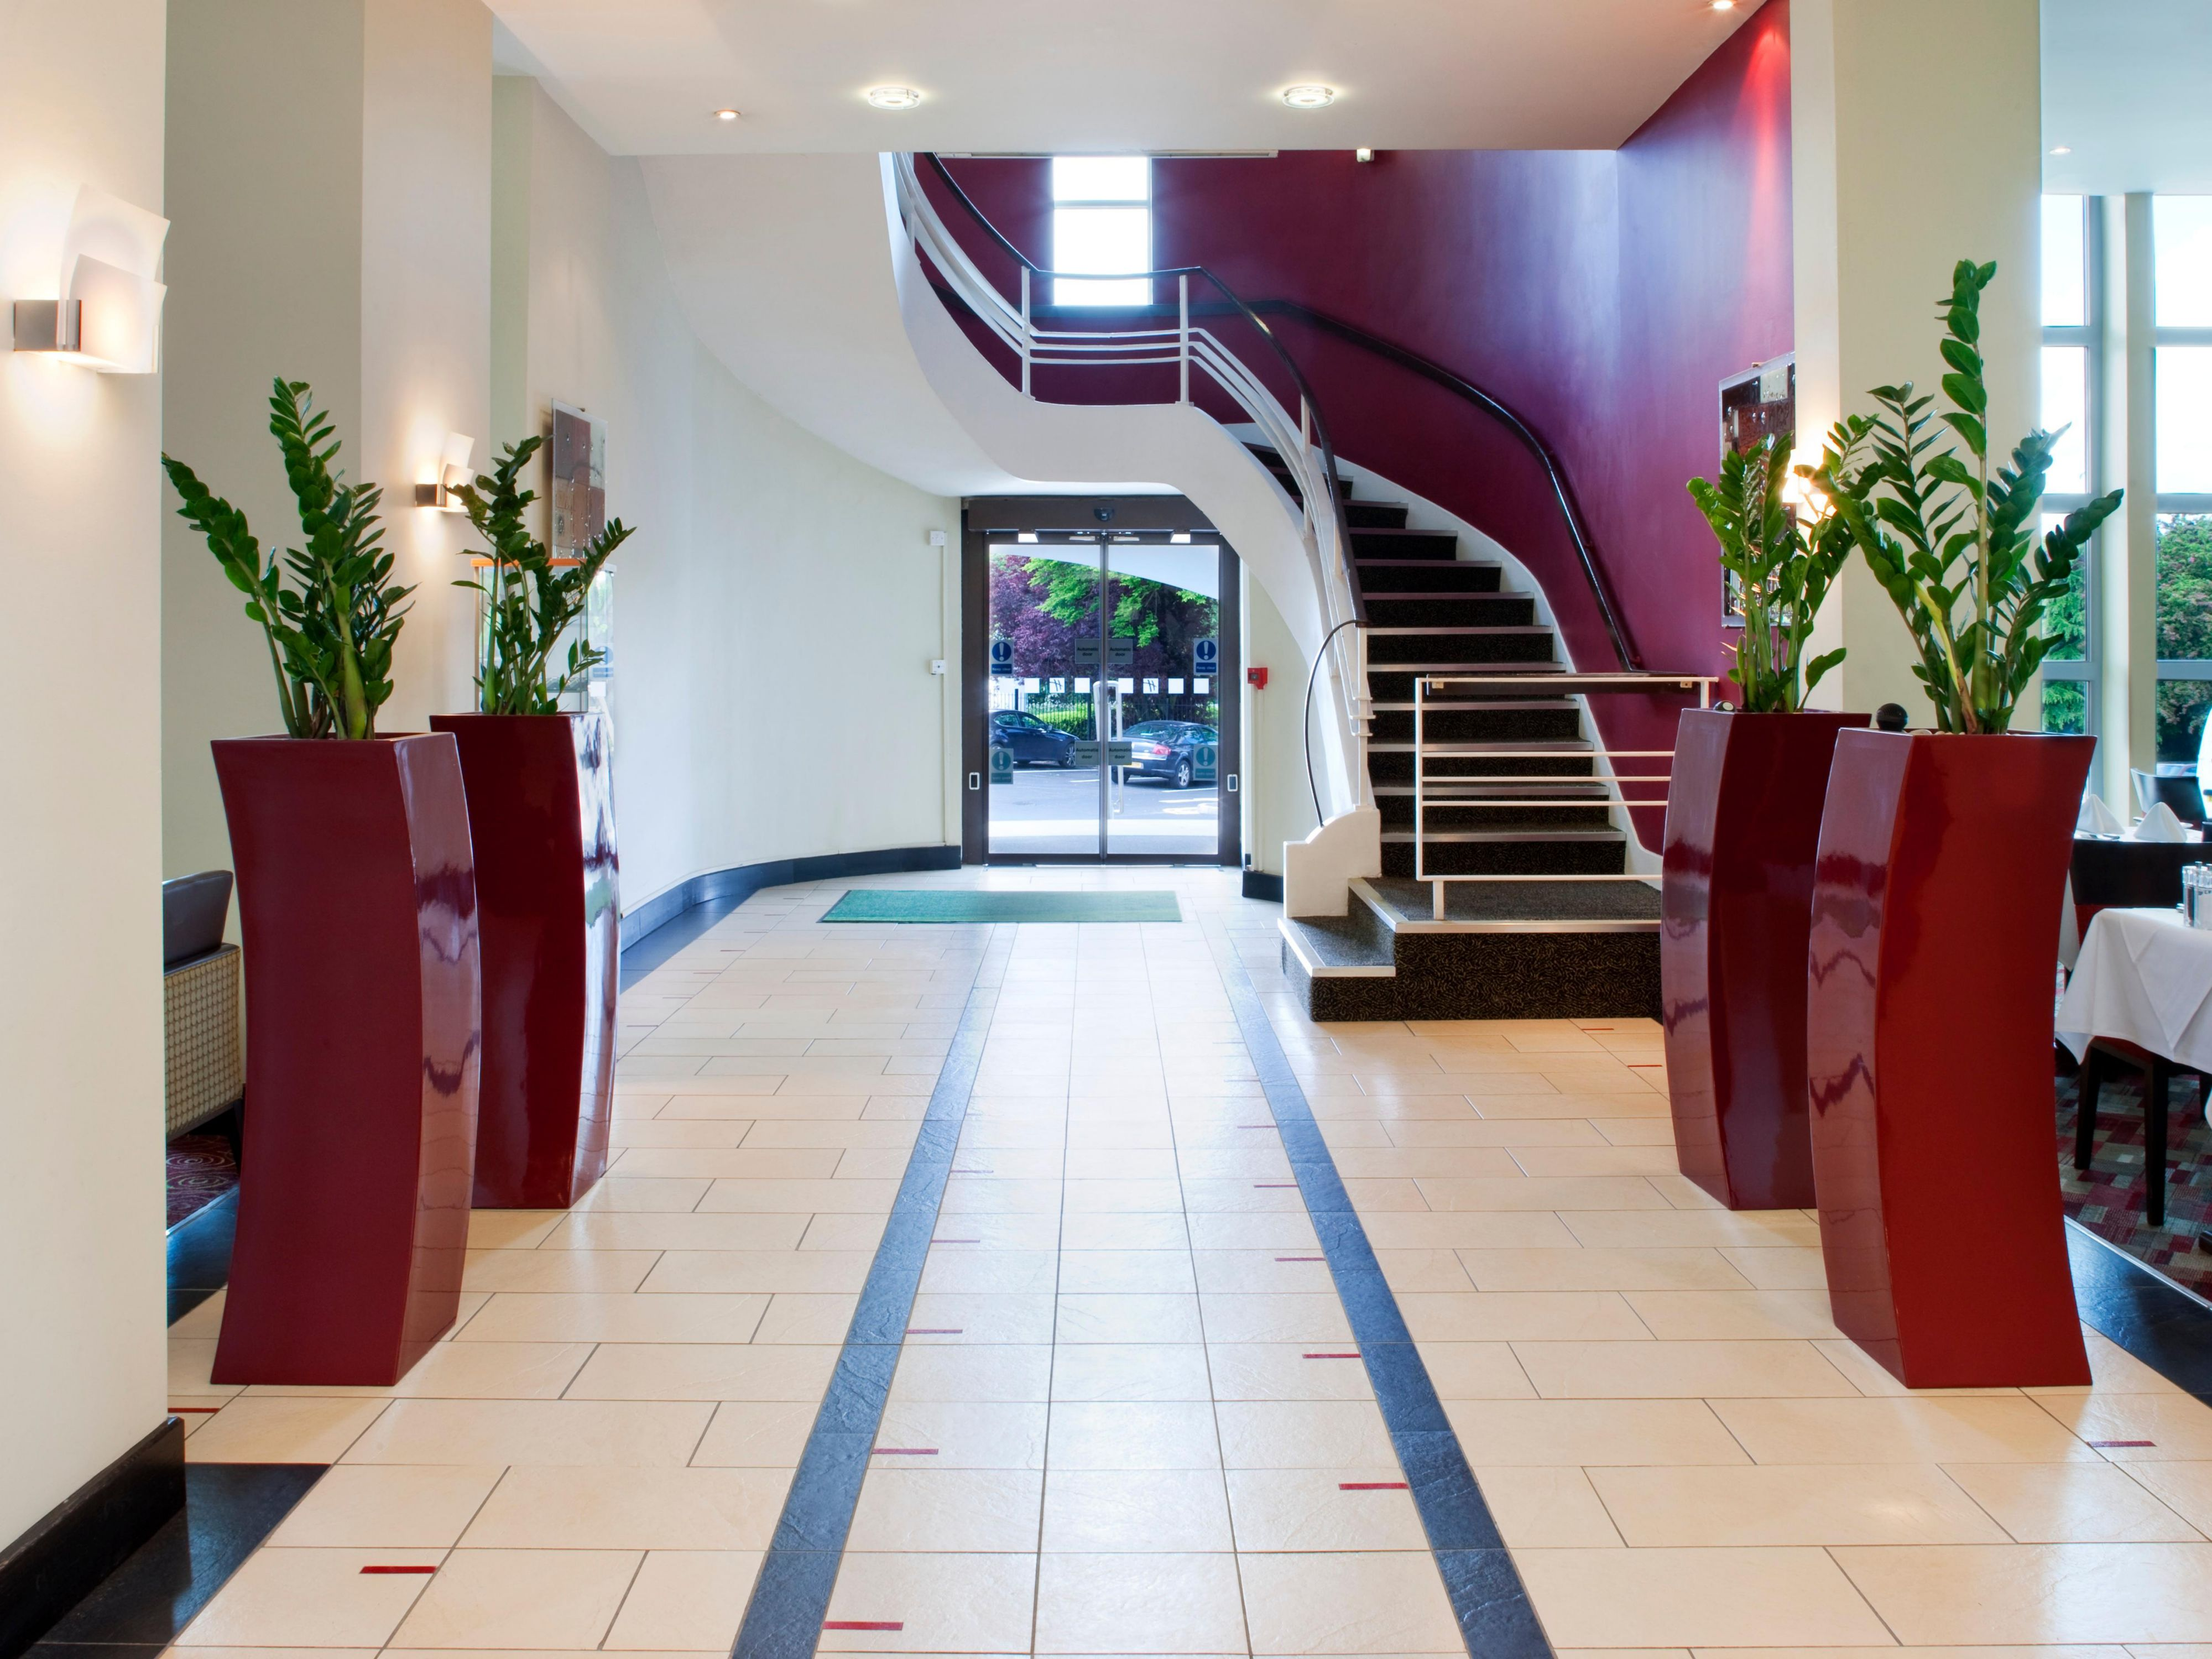 Hotel front entrance area